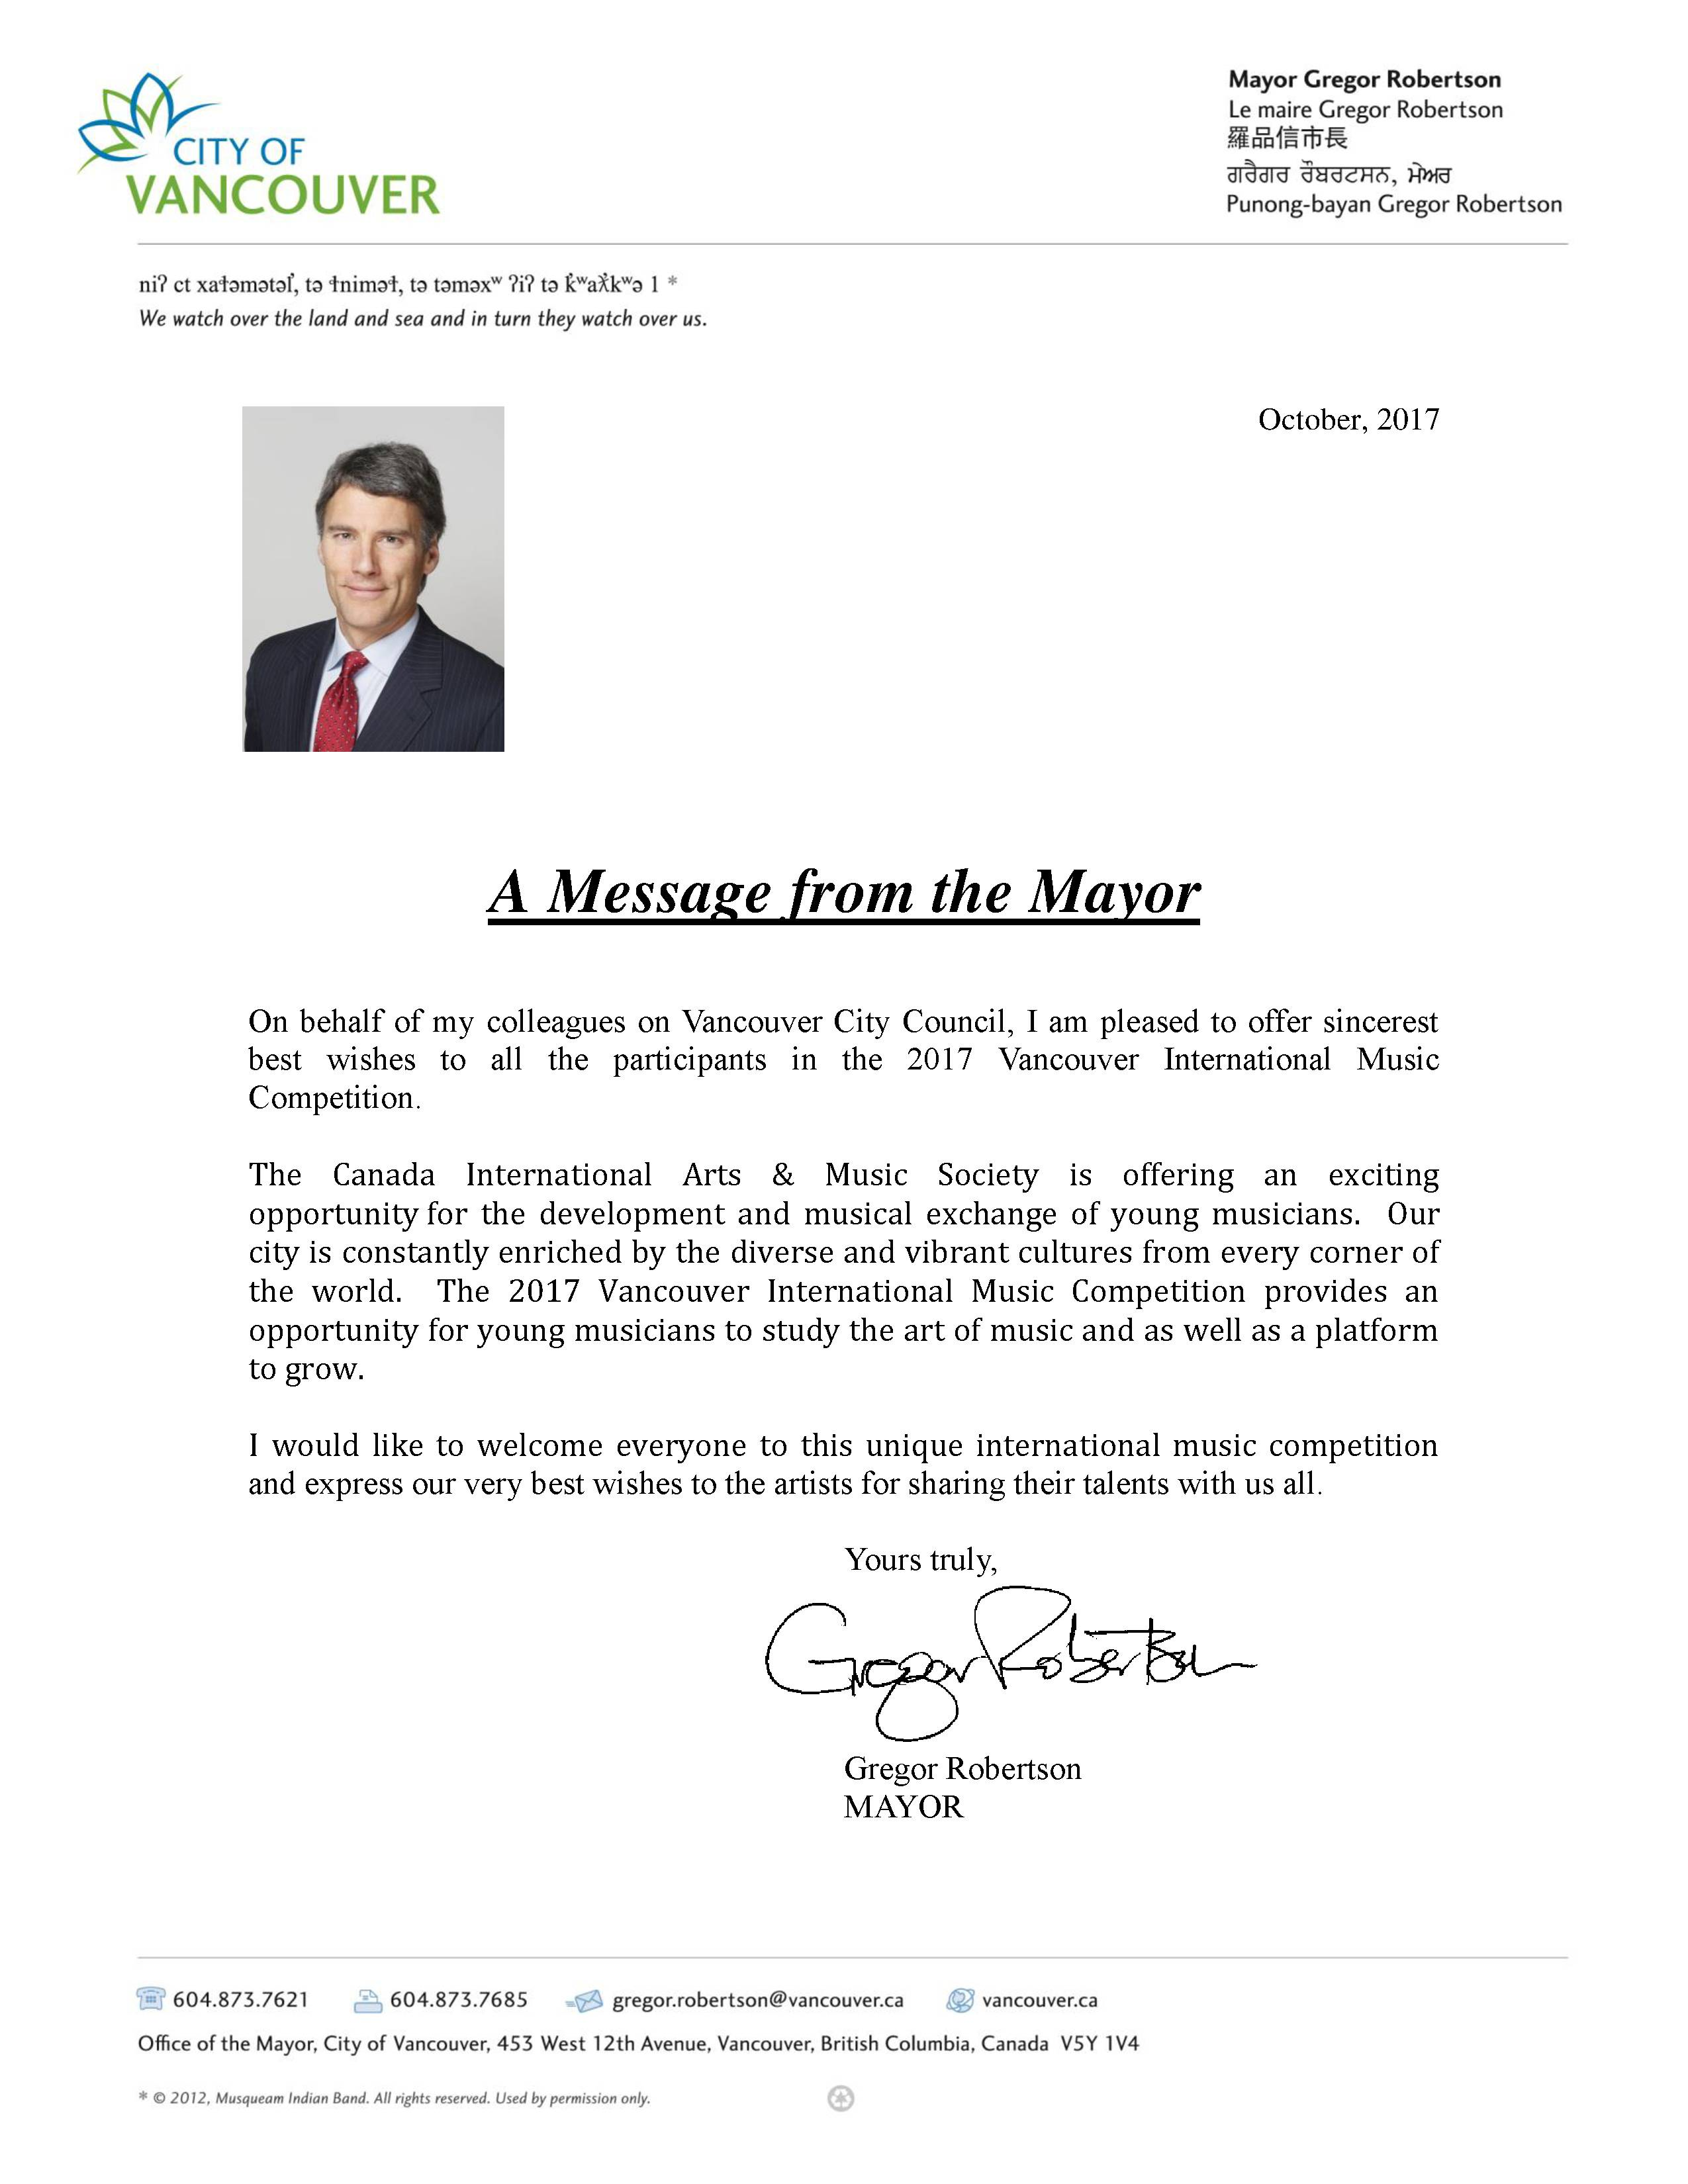 vancouver mayor greeting letter  u2013 vancouver international music competition